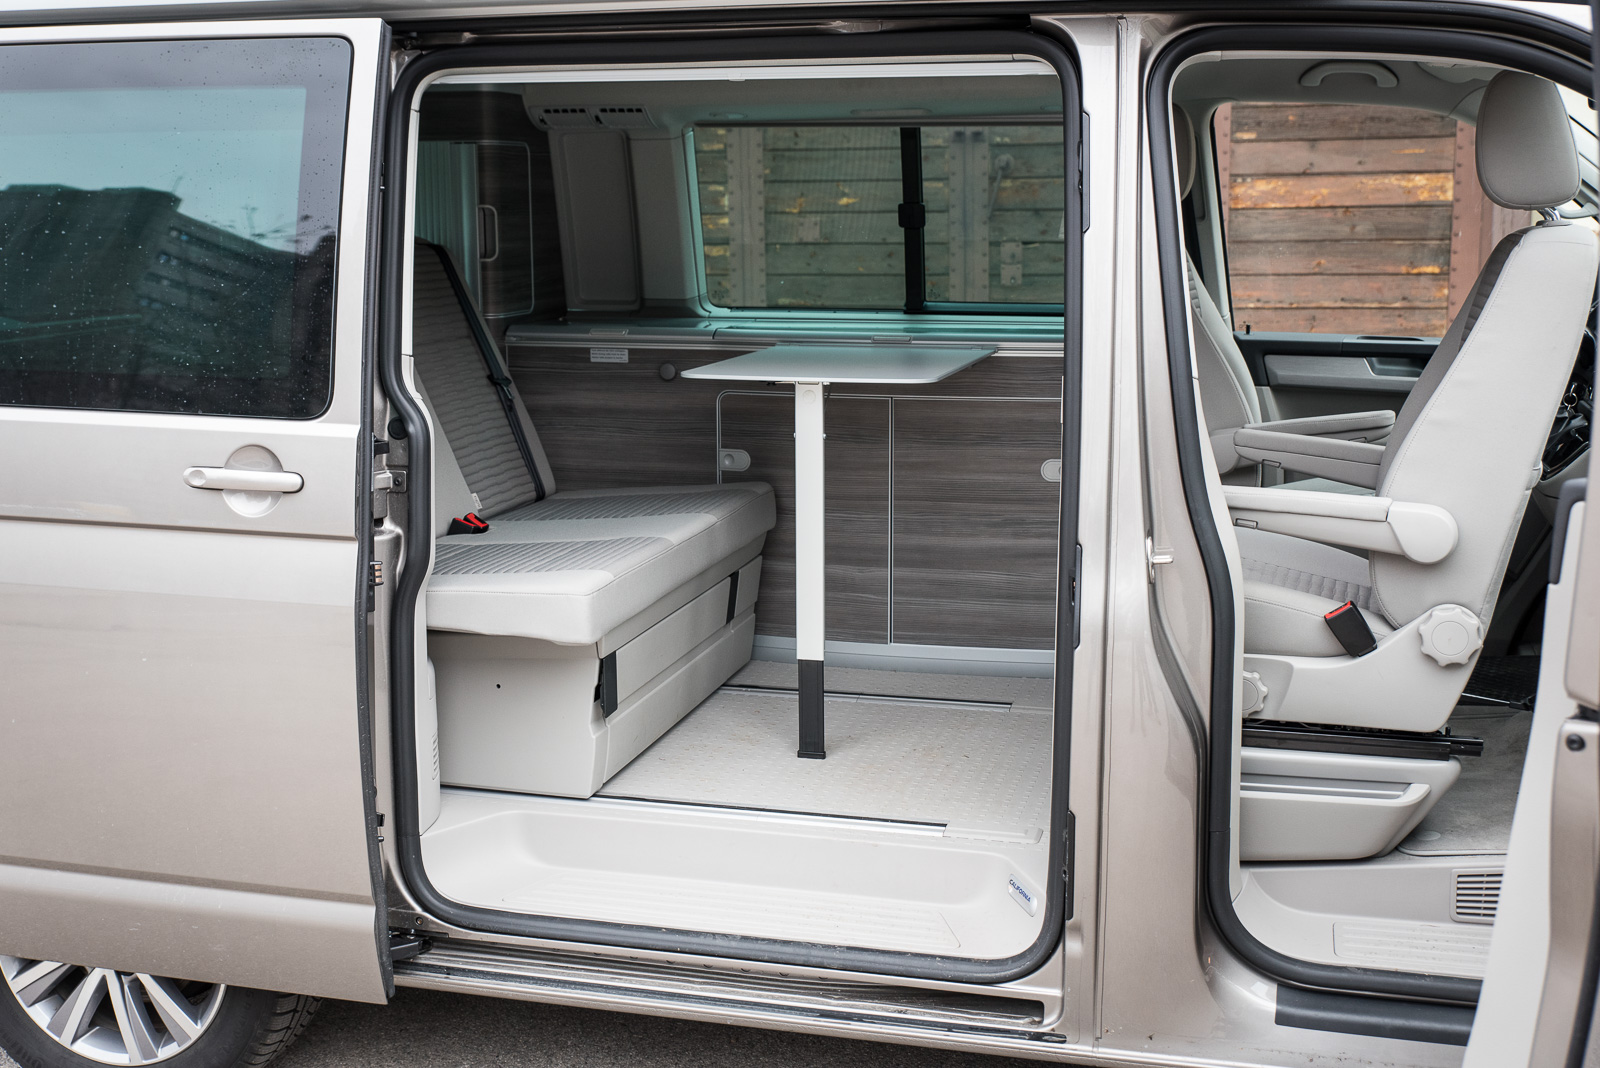 vw t6 california bringt farbe ins spiel vw t6 california. Black Bedroom Furniture Sets. Home Design Ideas